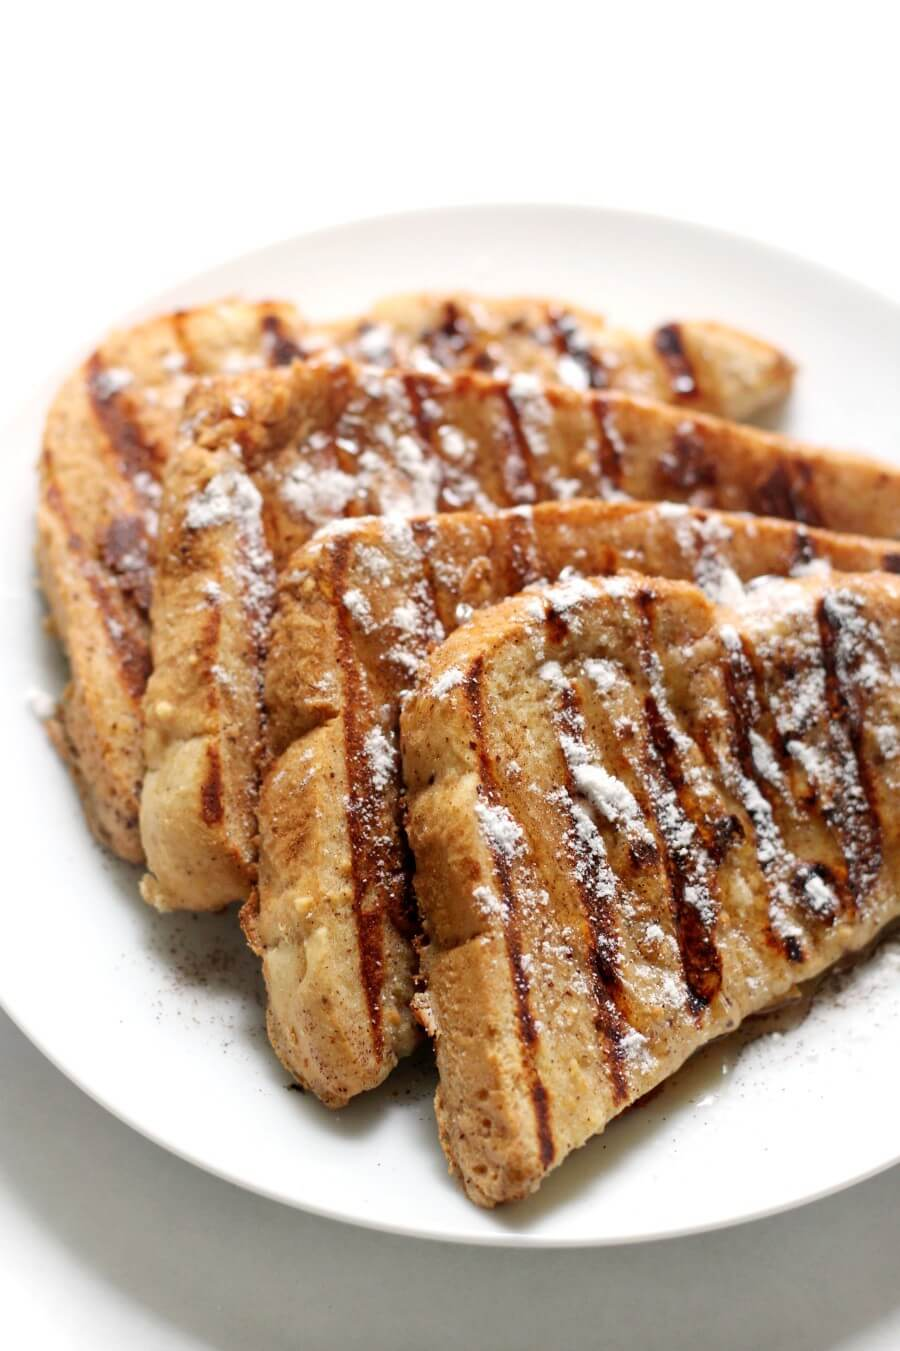 four pieces of gluten-free grilled French toast plated